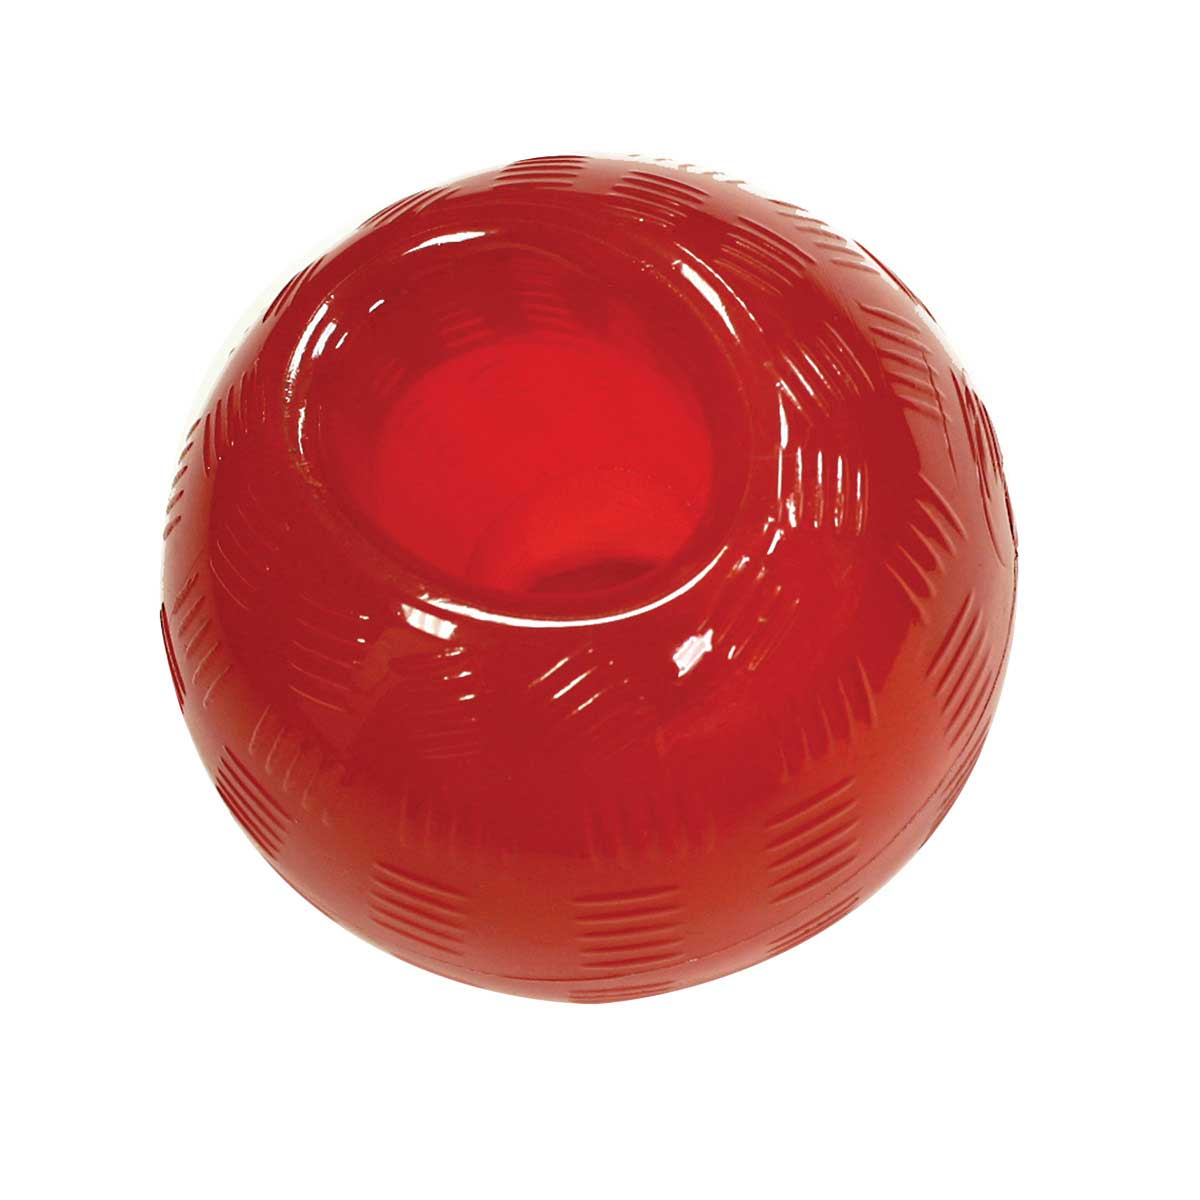 2.25 inch Play Strong Ball For Small Dogs - Mini Size